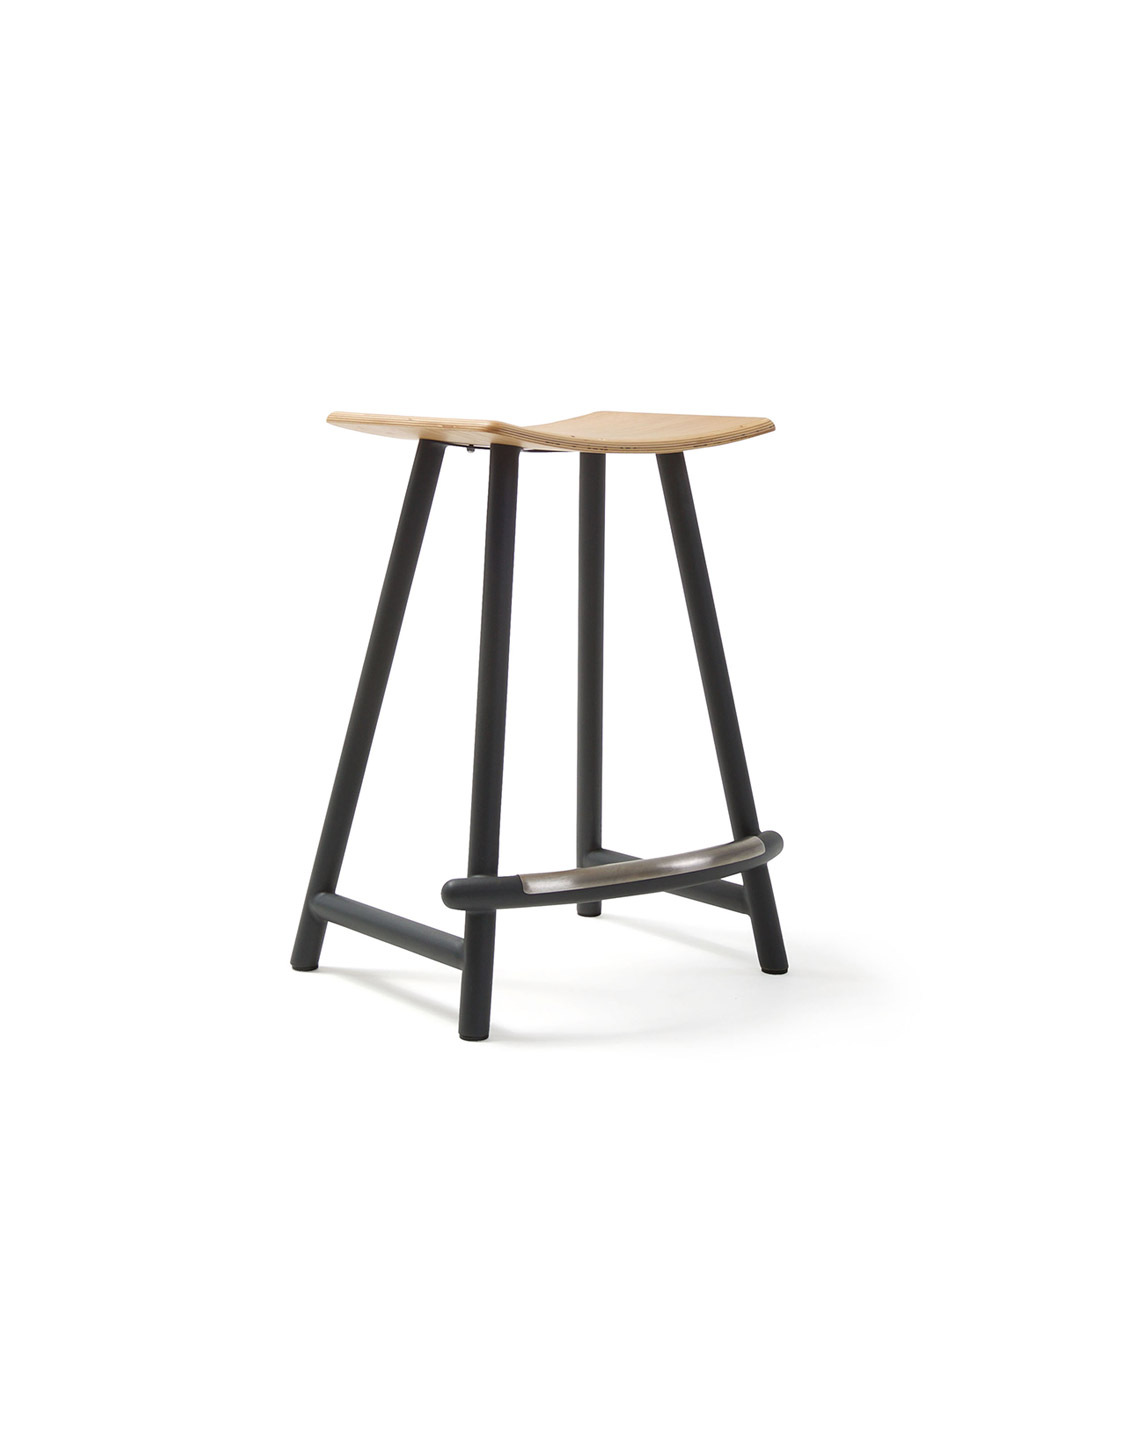 Swell Panda Sd9447B Counter Stool Cape Furniture Unemploymentrelief Wooden Chair Designs For Living Room Unemploymentrelieforg